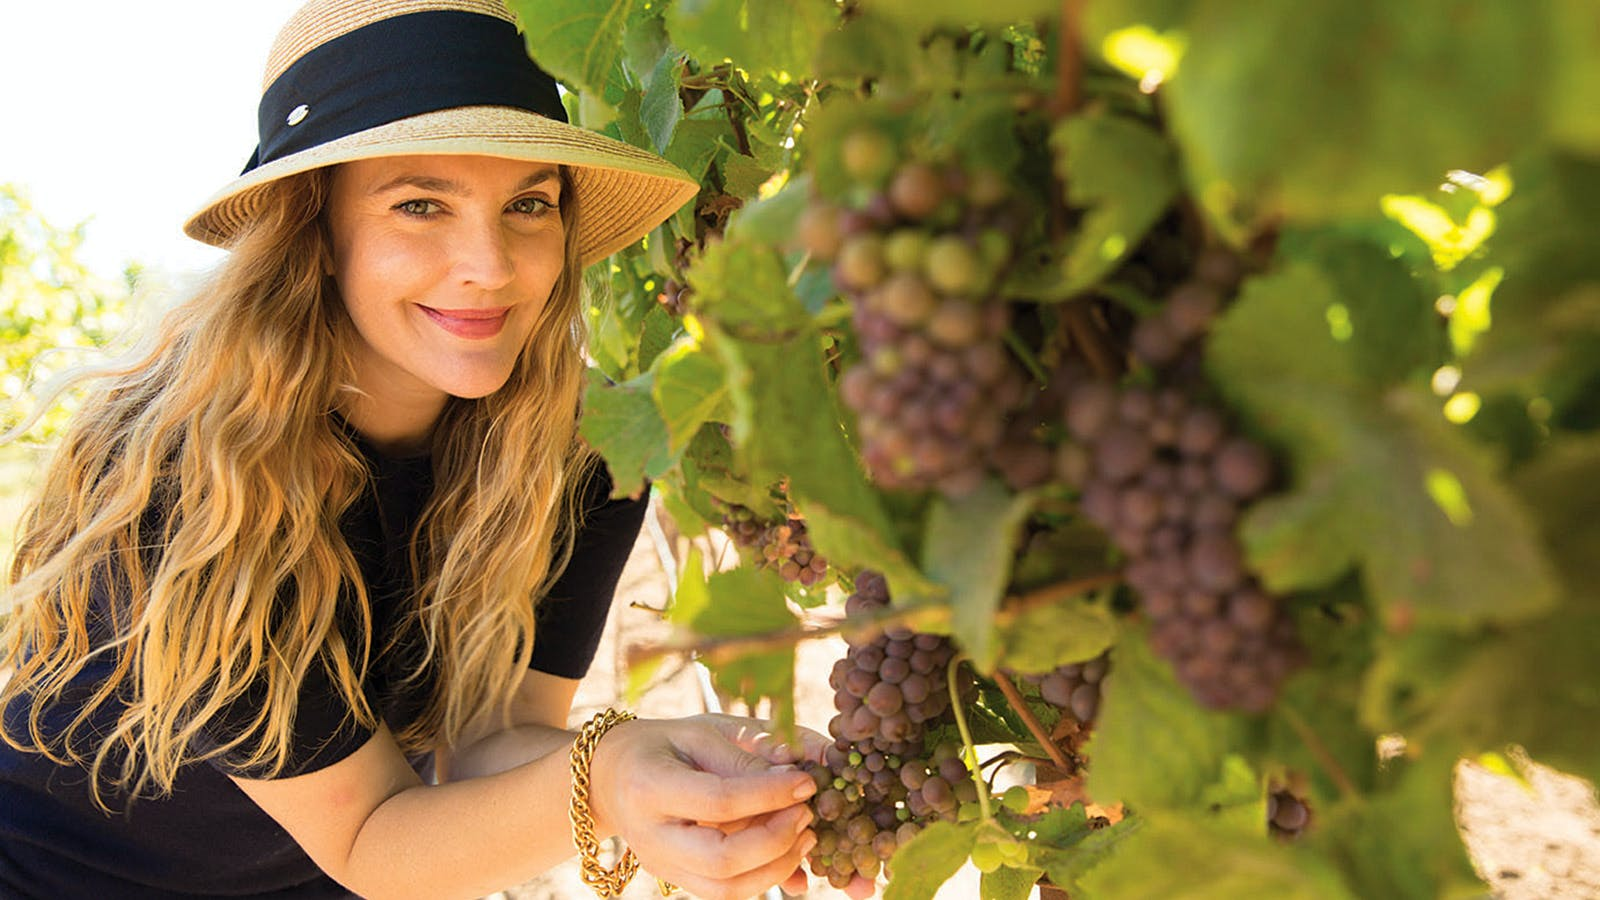 Drew Barrymore Is Ready for Rosé Season